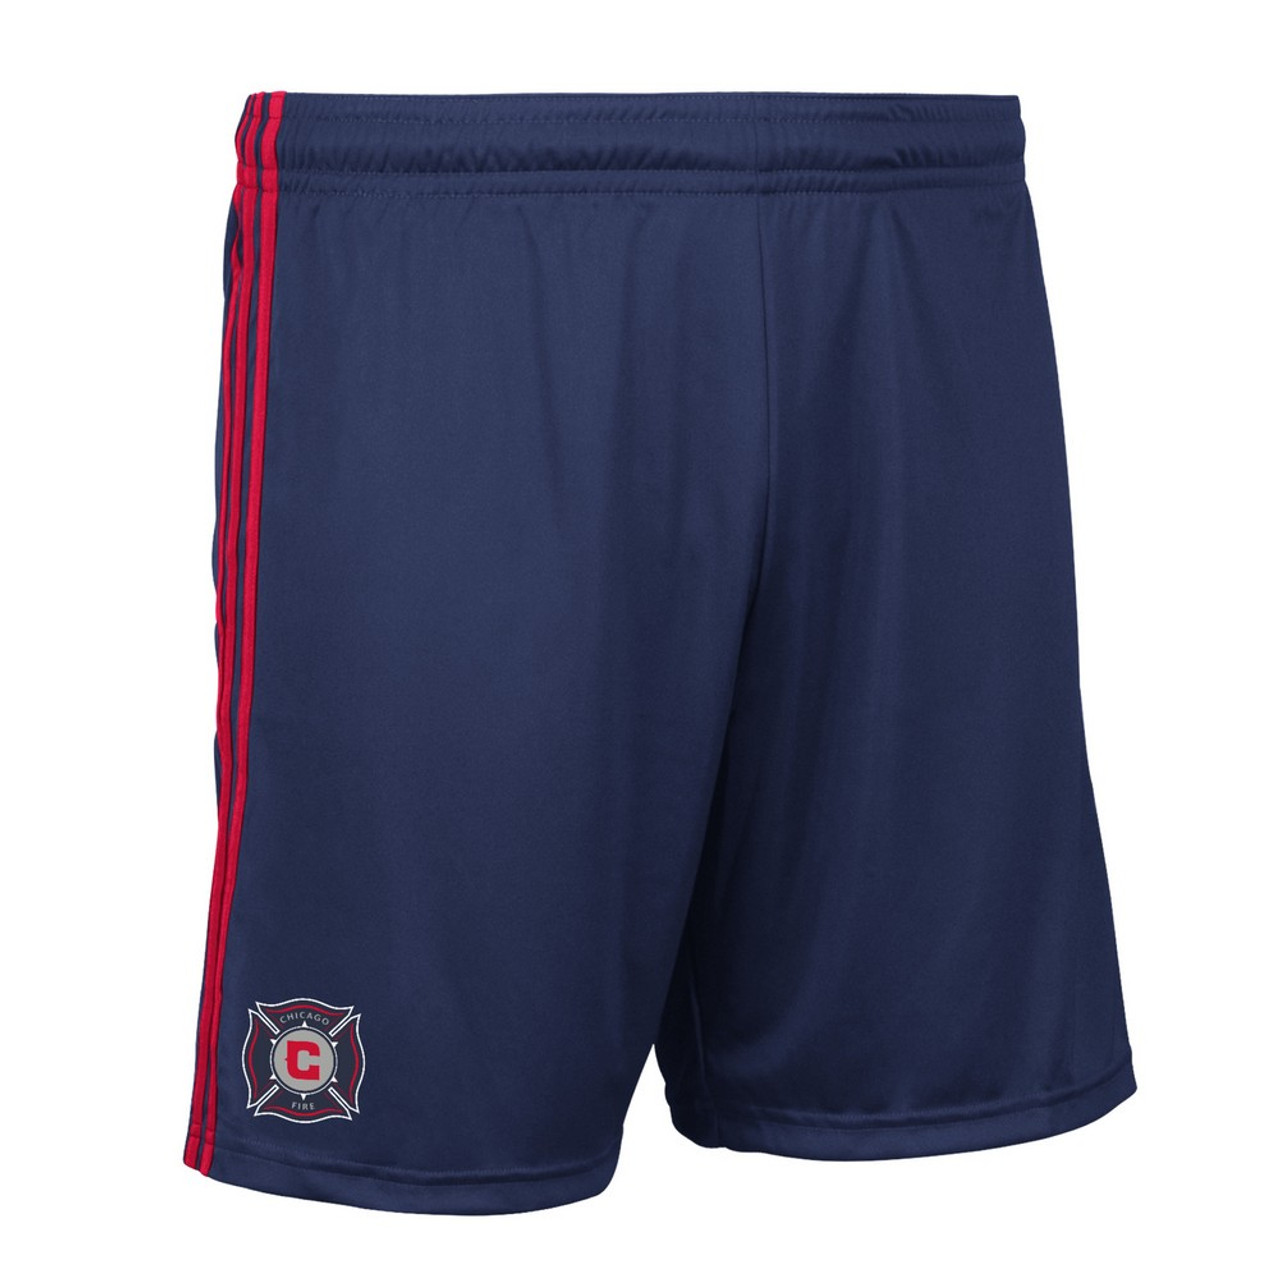 Chicago Fire Shorts Replica Adidas Soccer Shorts